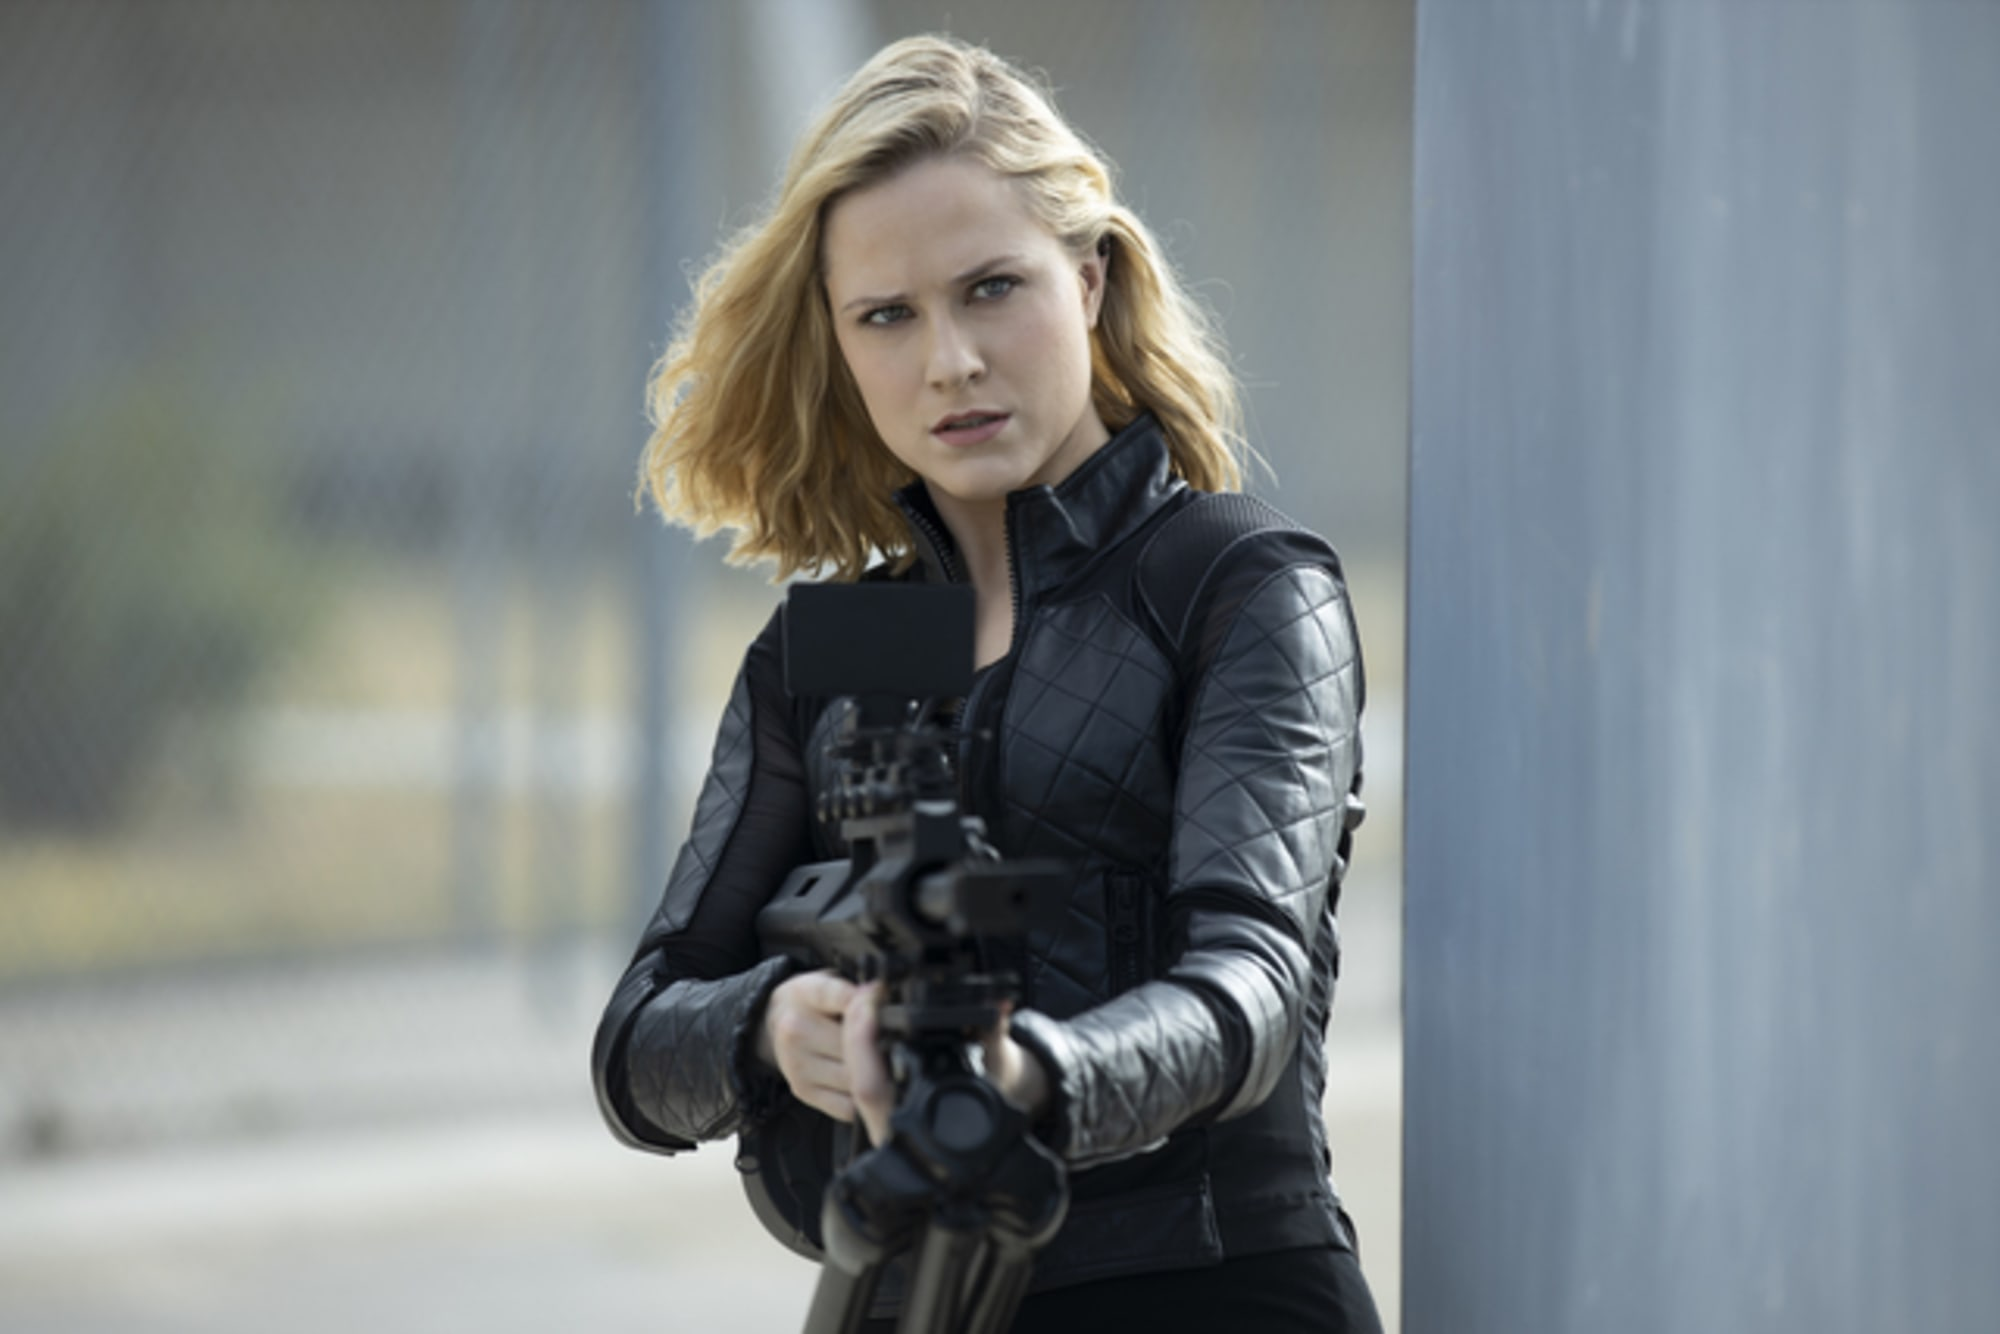 Westworld Season 3 Episode 8: Crisis Theory update and Spoilers